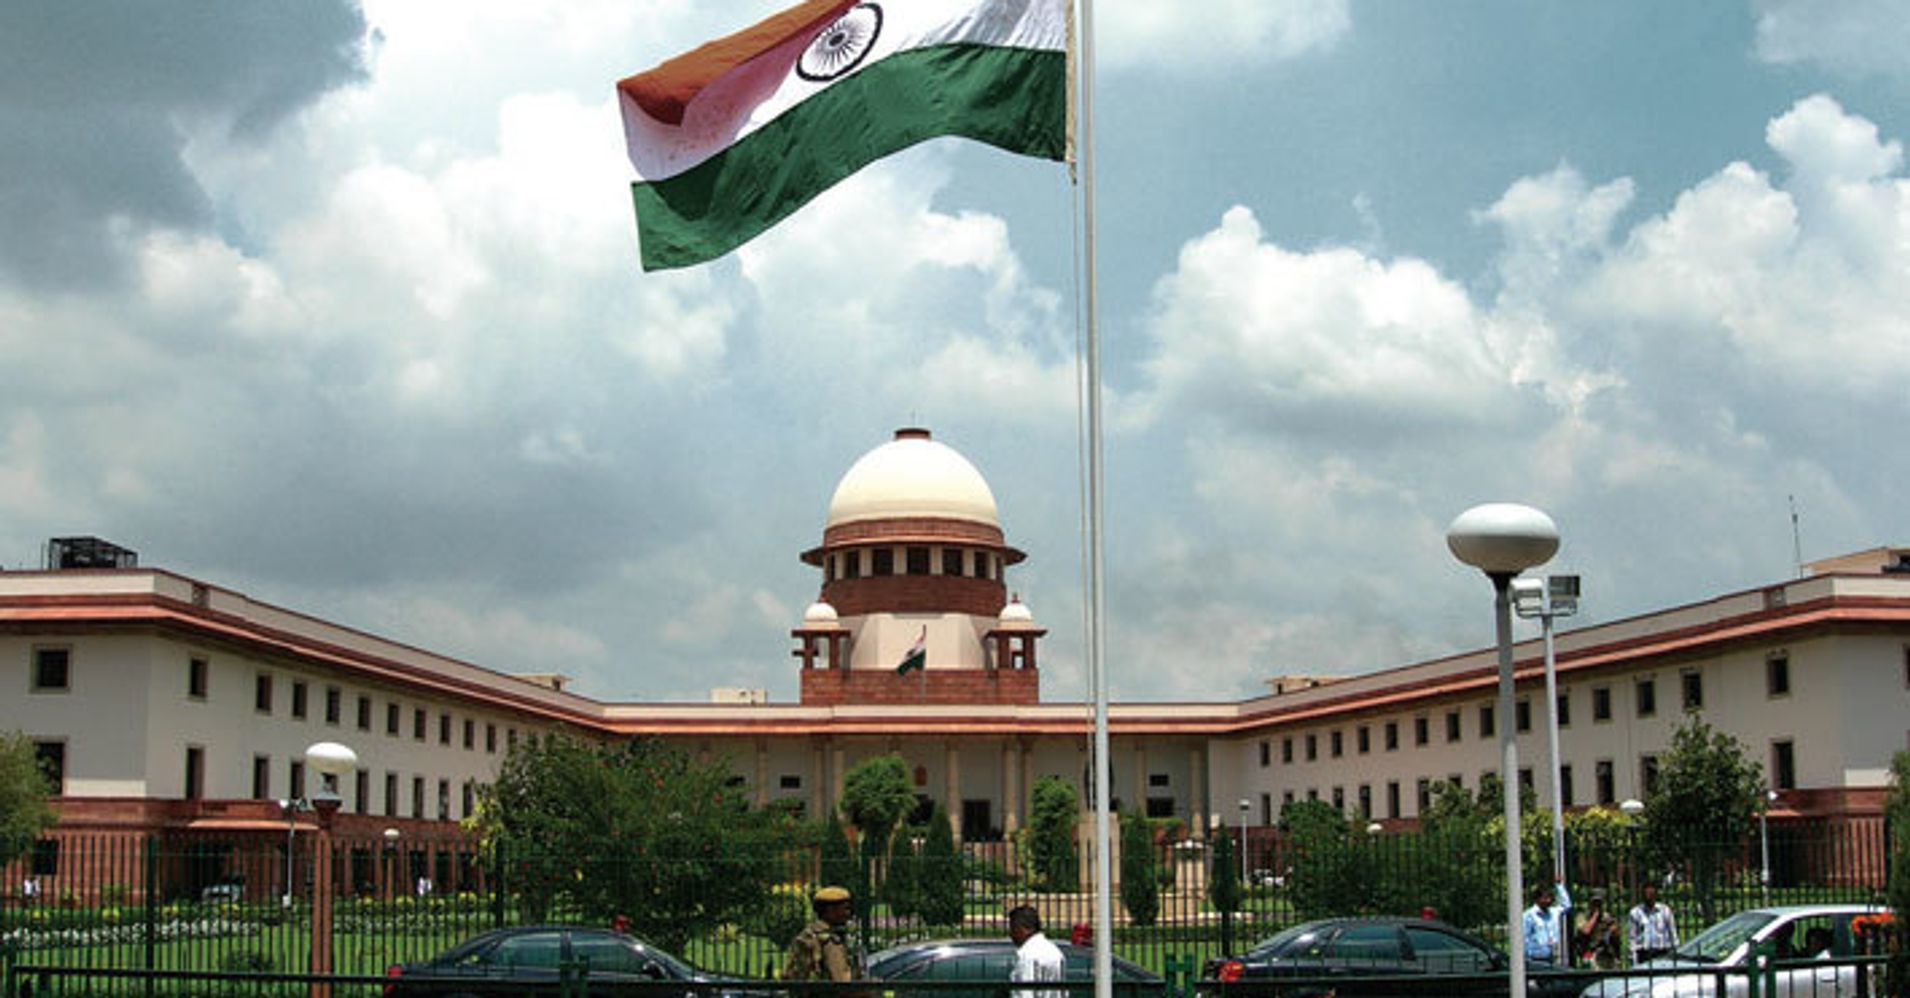 establishment of high court in india Hiiiiiiiiii there are 21 high courts in india india's unitary judicial system is made up of the supreme court of india at the national level, for the entire country and the 21 high courts at the state level.